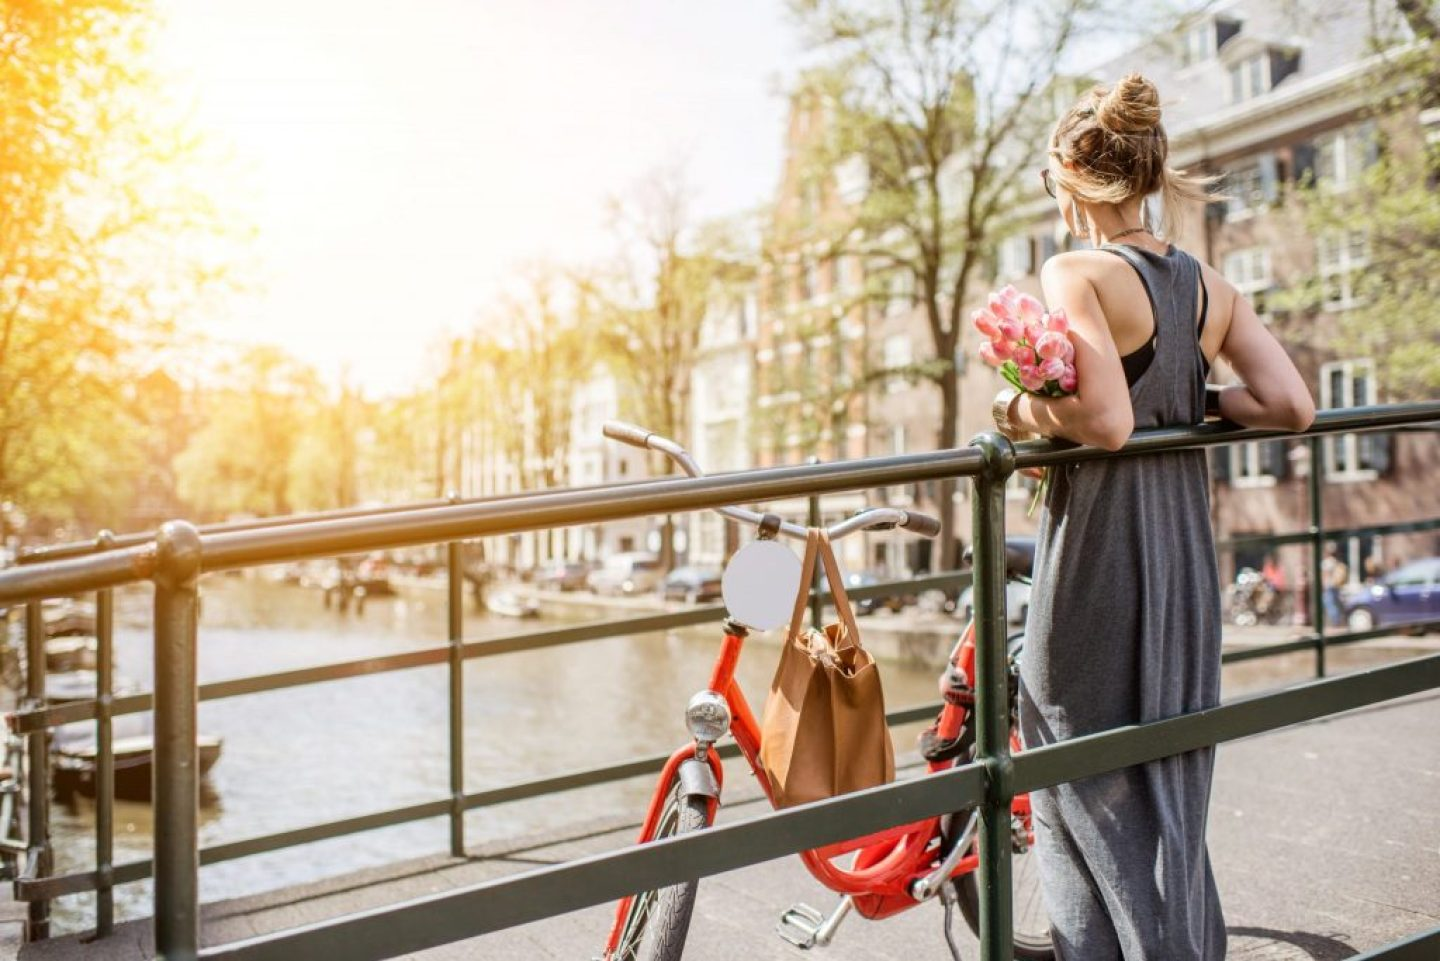 Amsterdam Facts: Interesting Things About This Dutch City